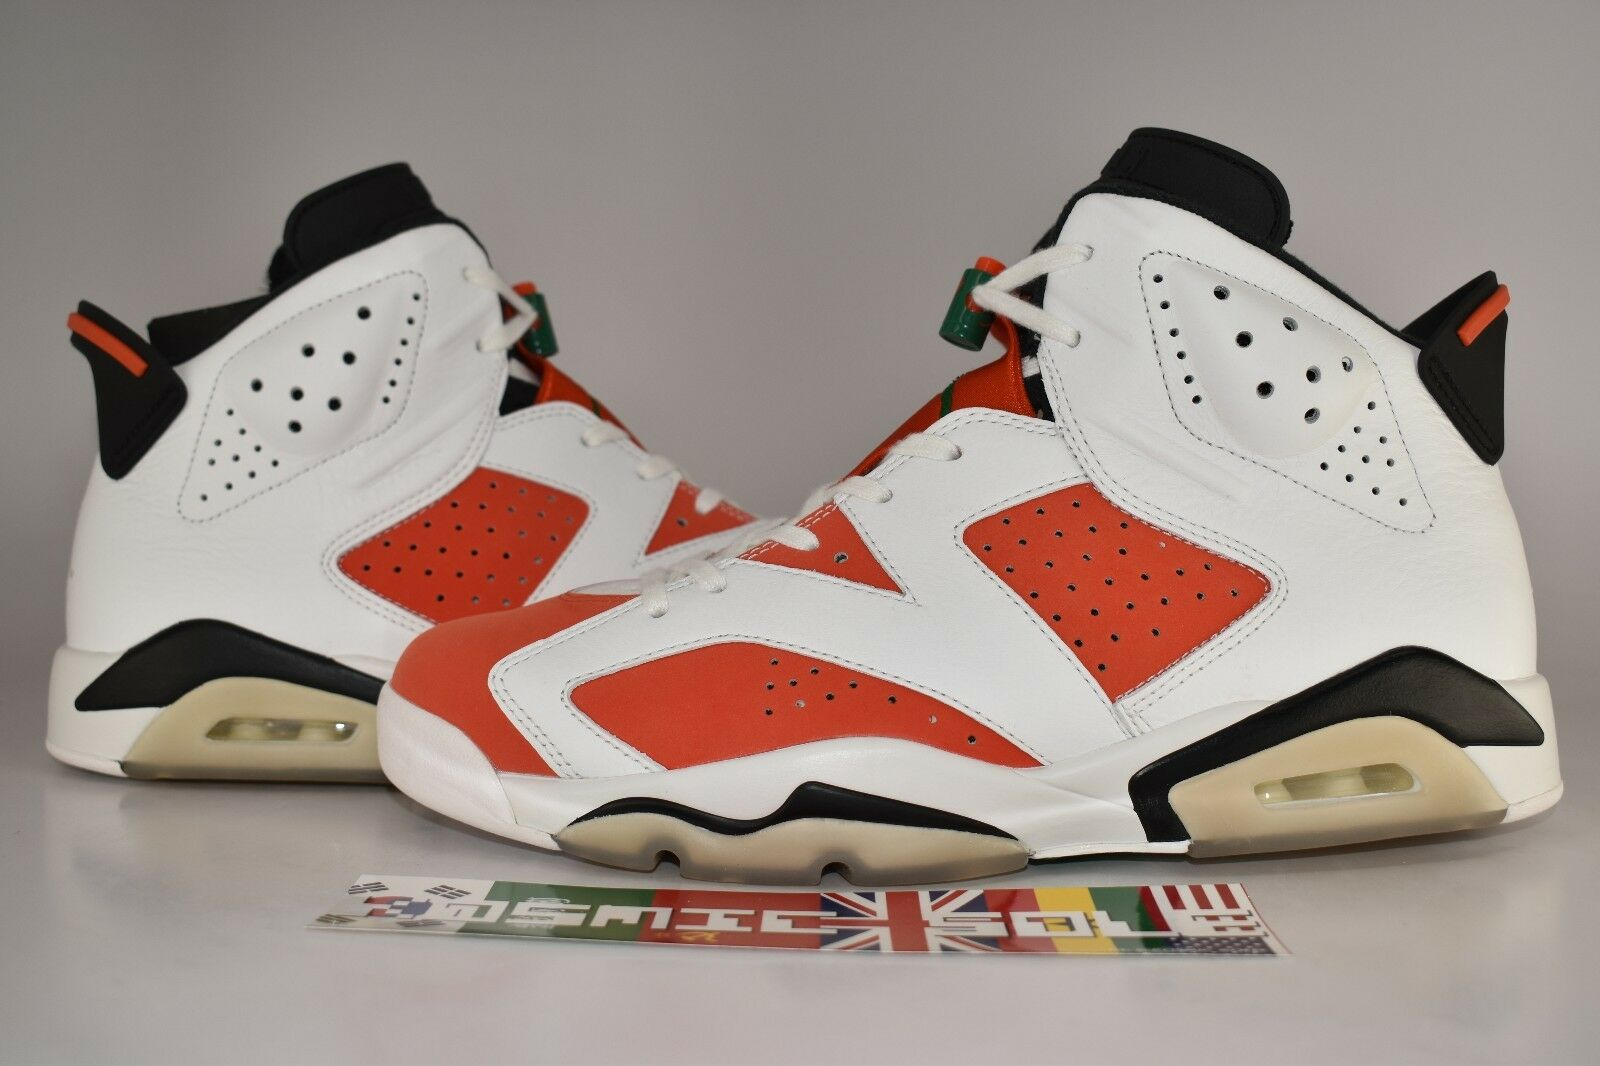 Nike Air Jordan 6 Size Retro Like Mike Gatorade Style Size 6 11 585b1b